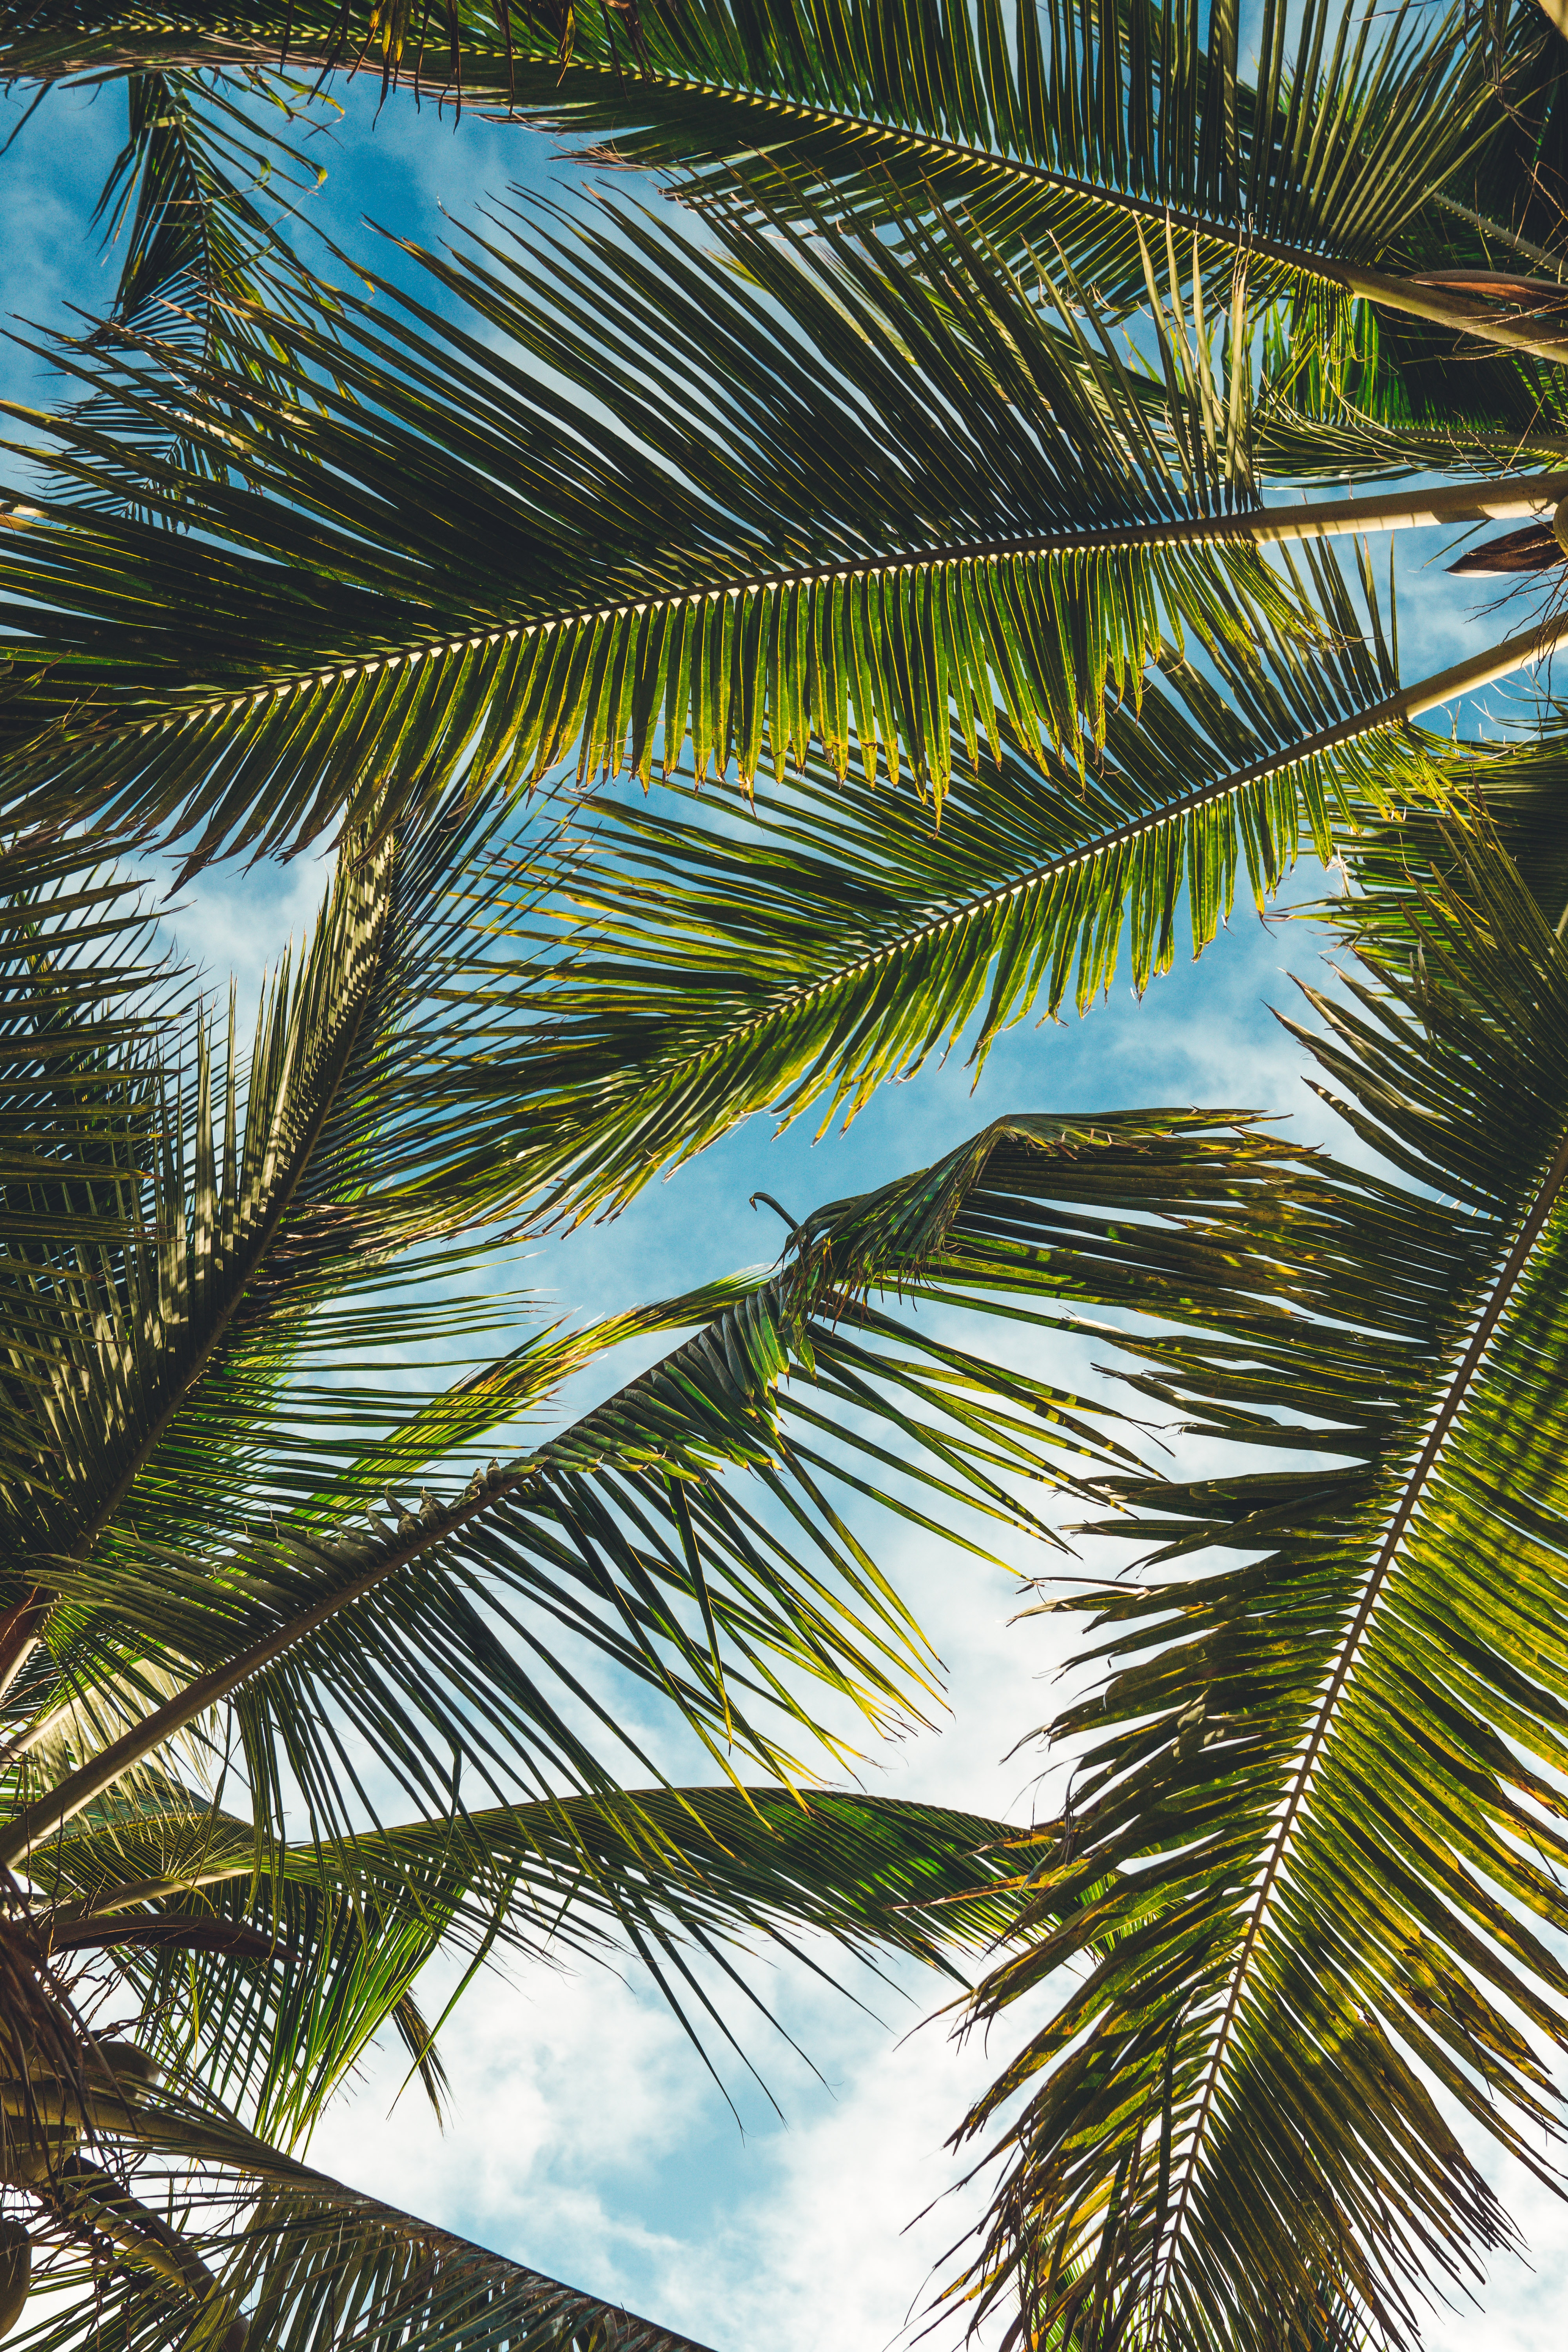 142723 download wallpaper Nature, Leaves, Branches, Tropics, Summer, Palms screensavers and pictures for free